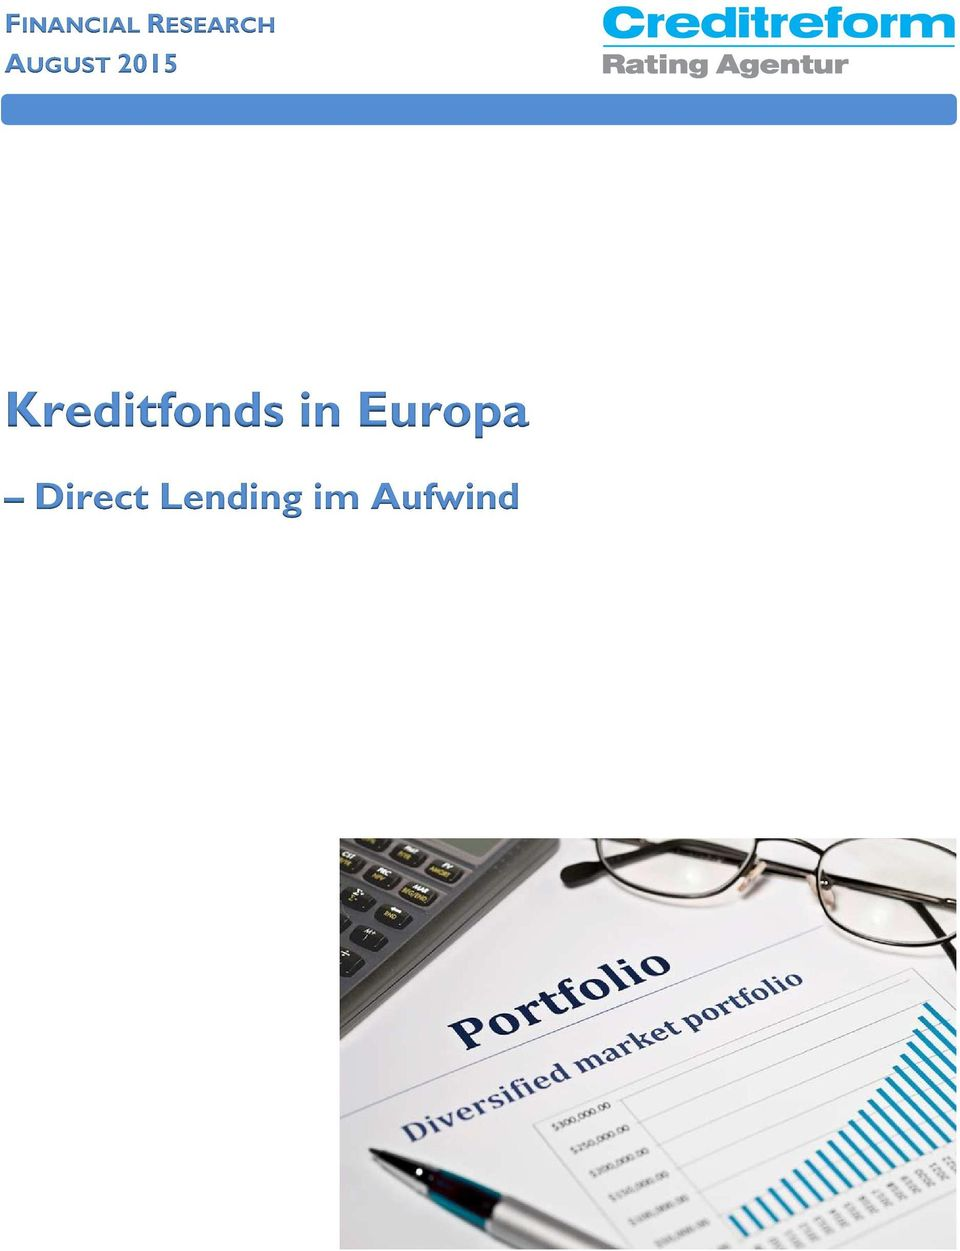 Kreditfonds in